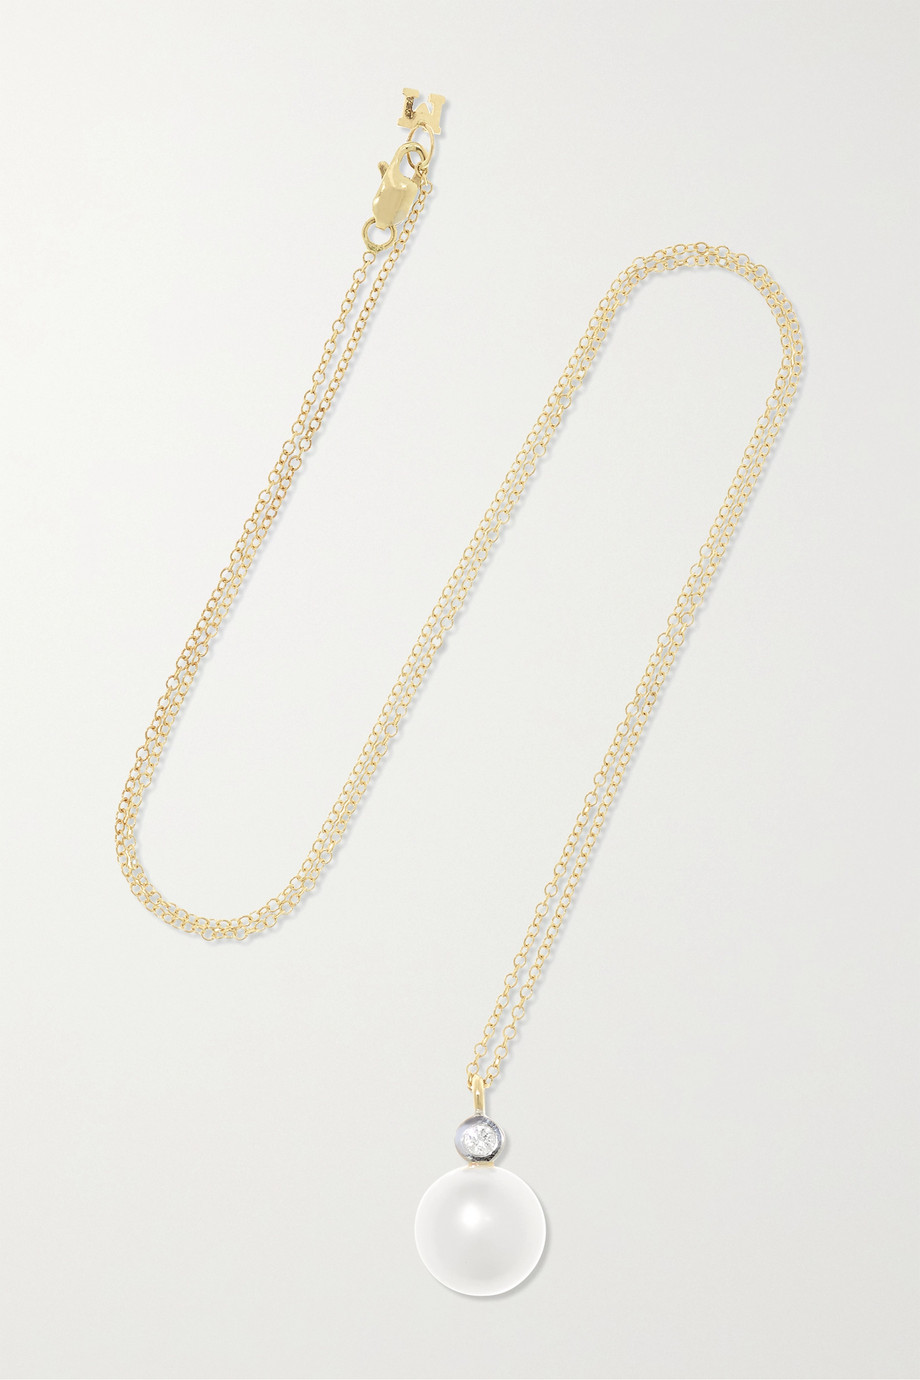 MATEO 14-karat gold, pearl and diamond necklace